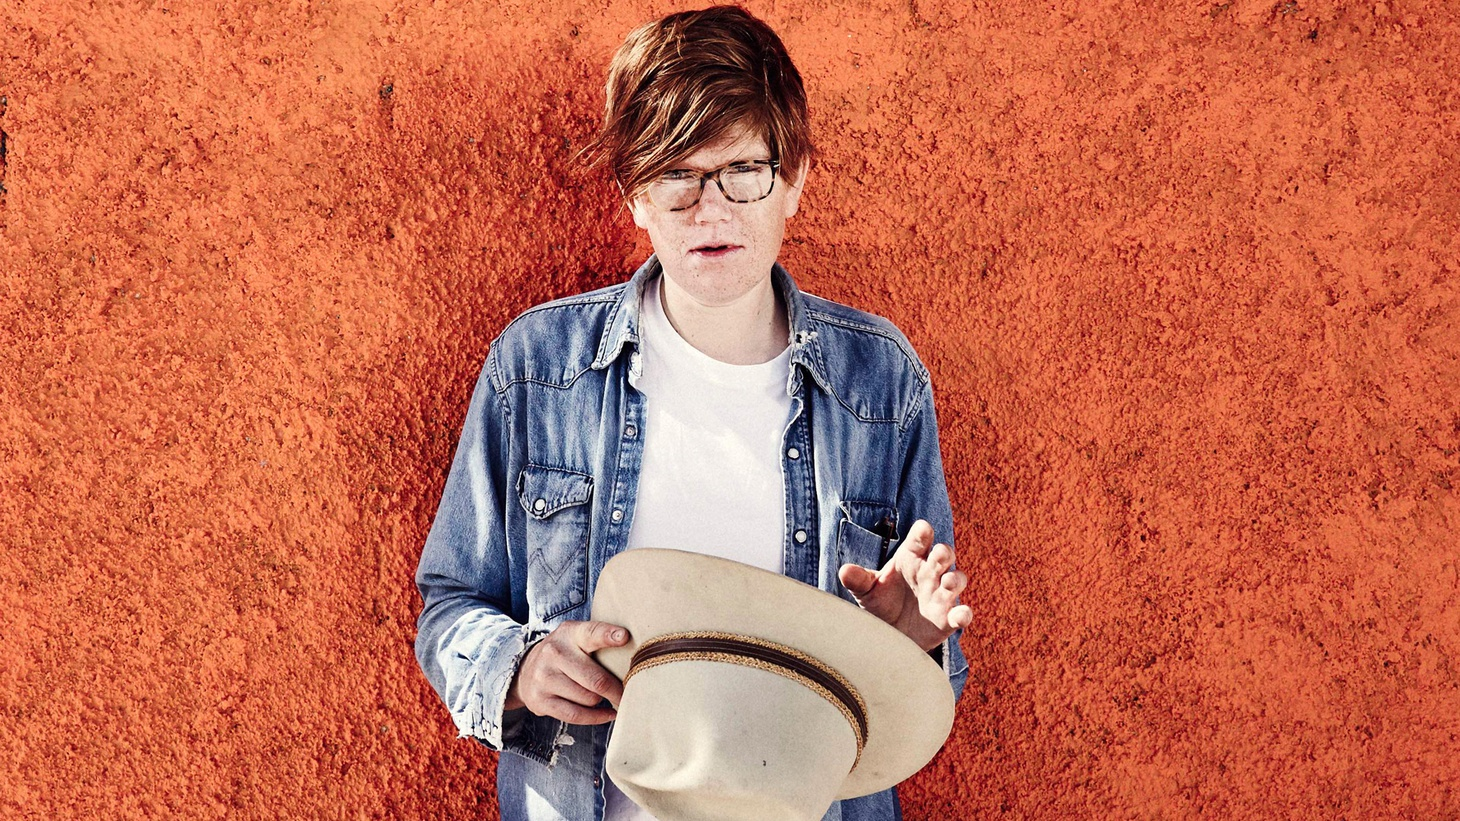 Brett Dennen has always written breezy pop songs, but his newest batch of tracks reveals a raw vulnerability as well.